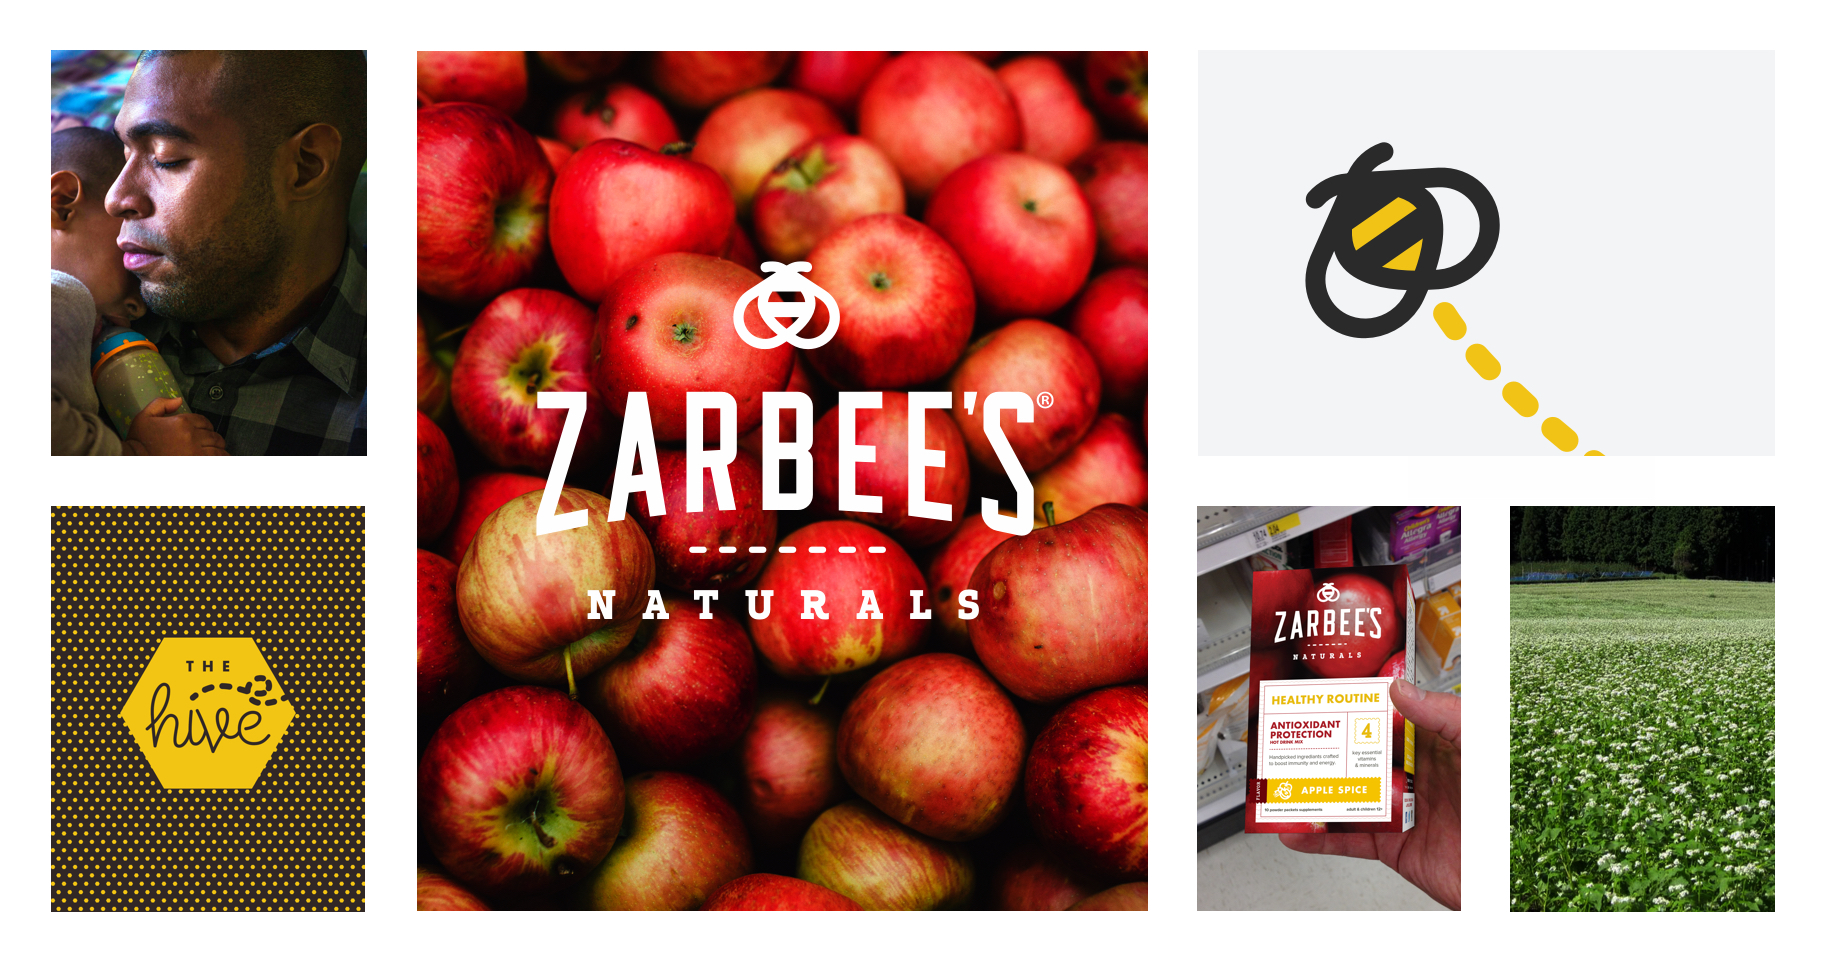 Collage of Zarbee's Natural brand elements